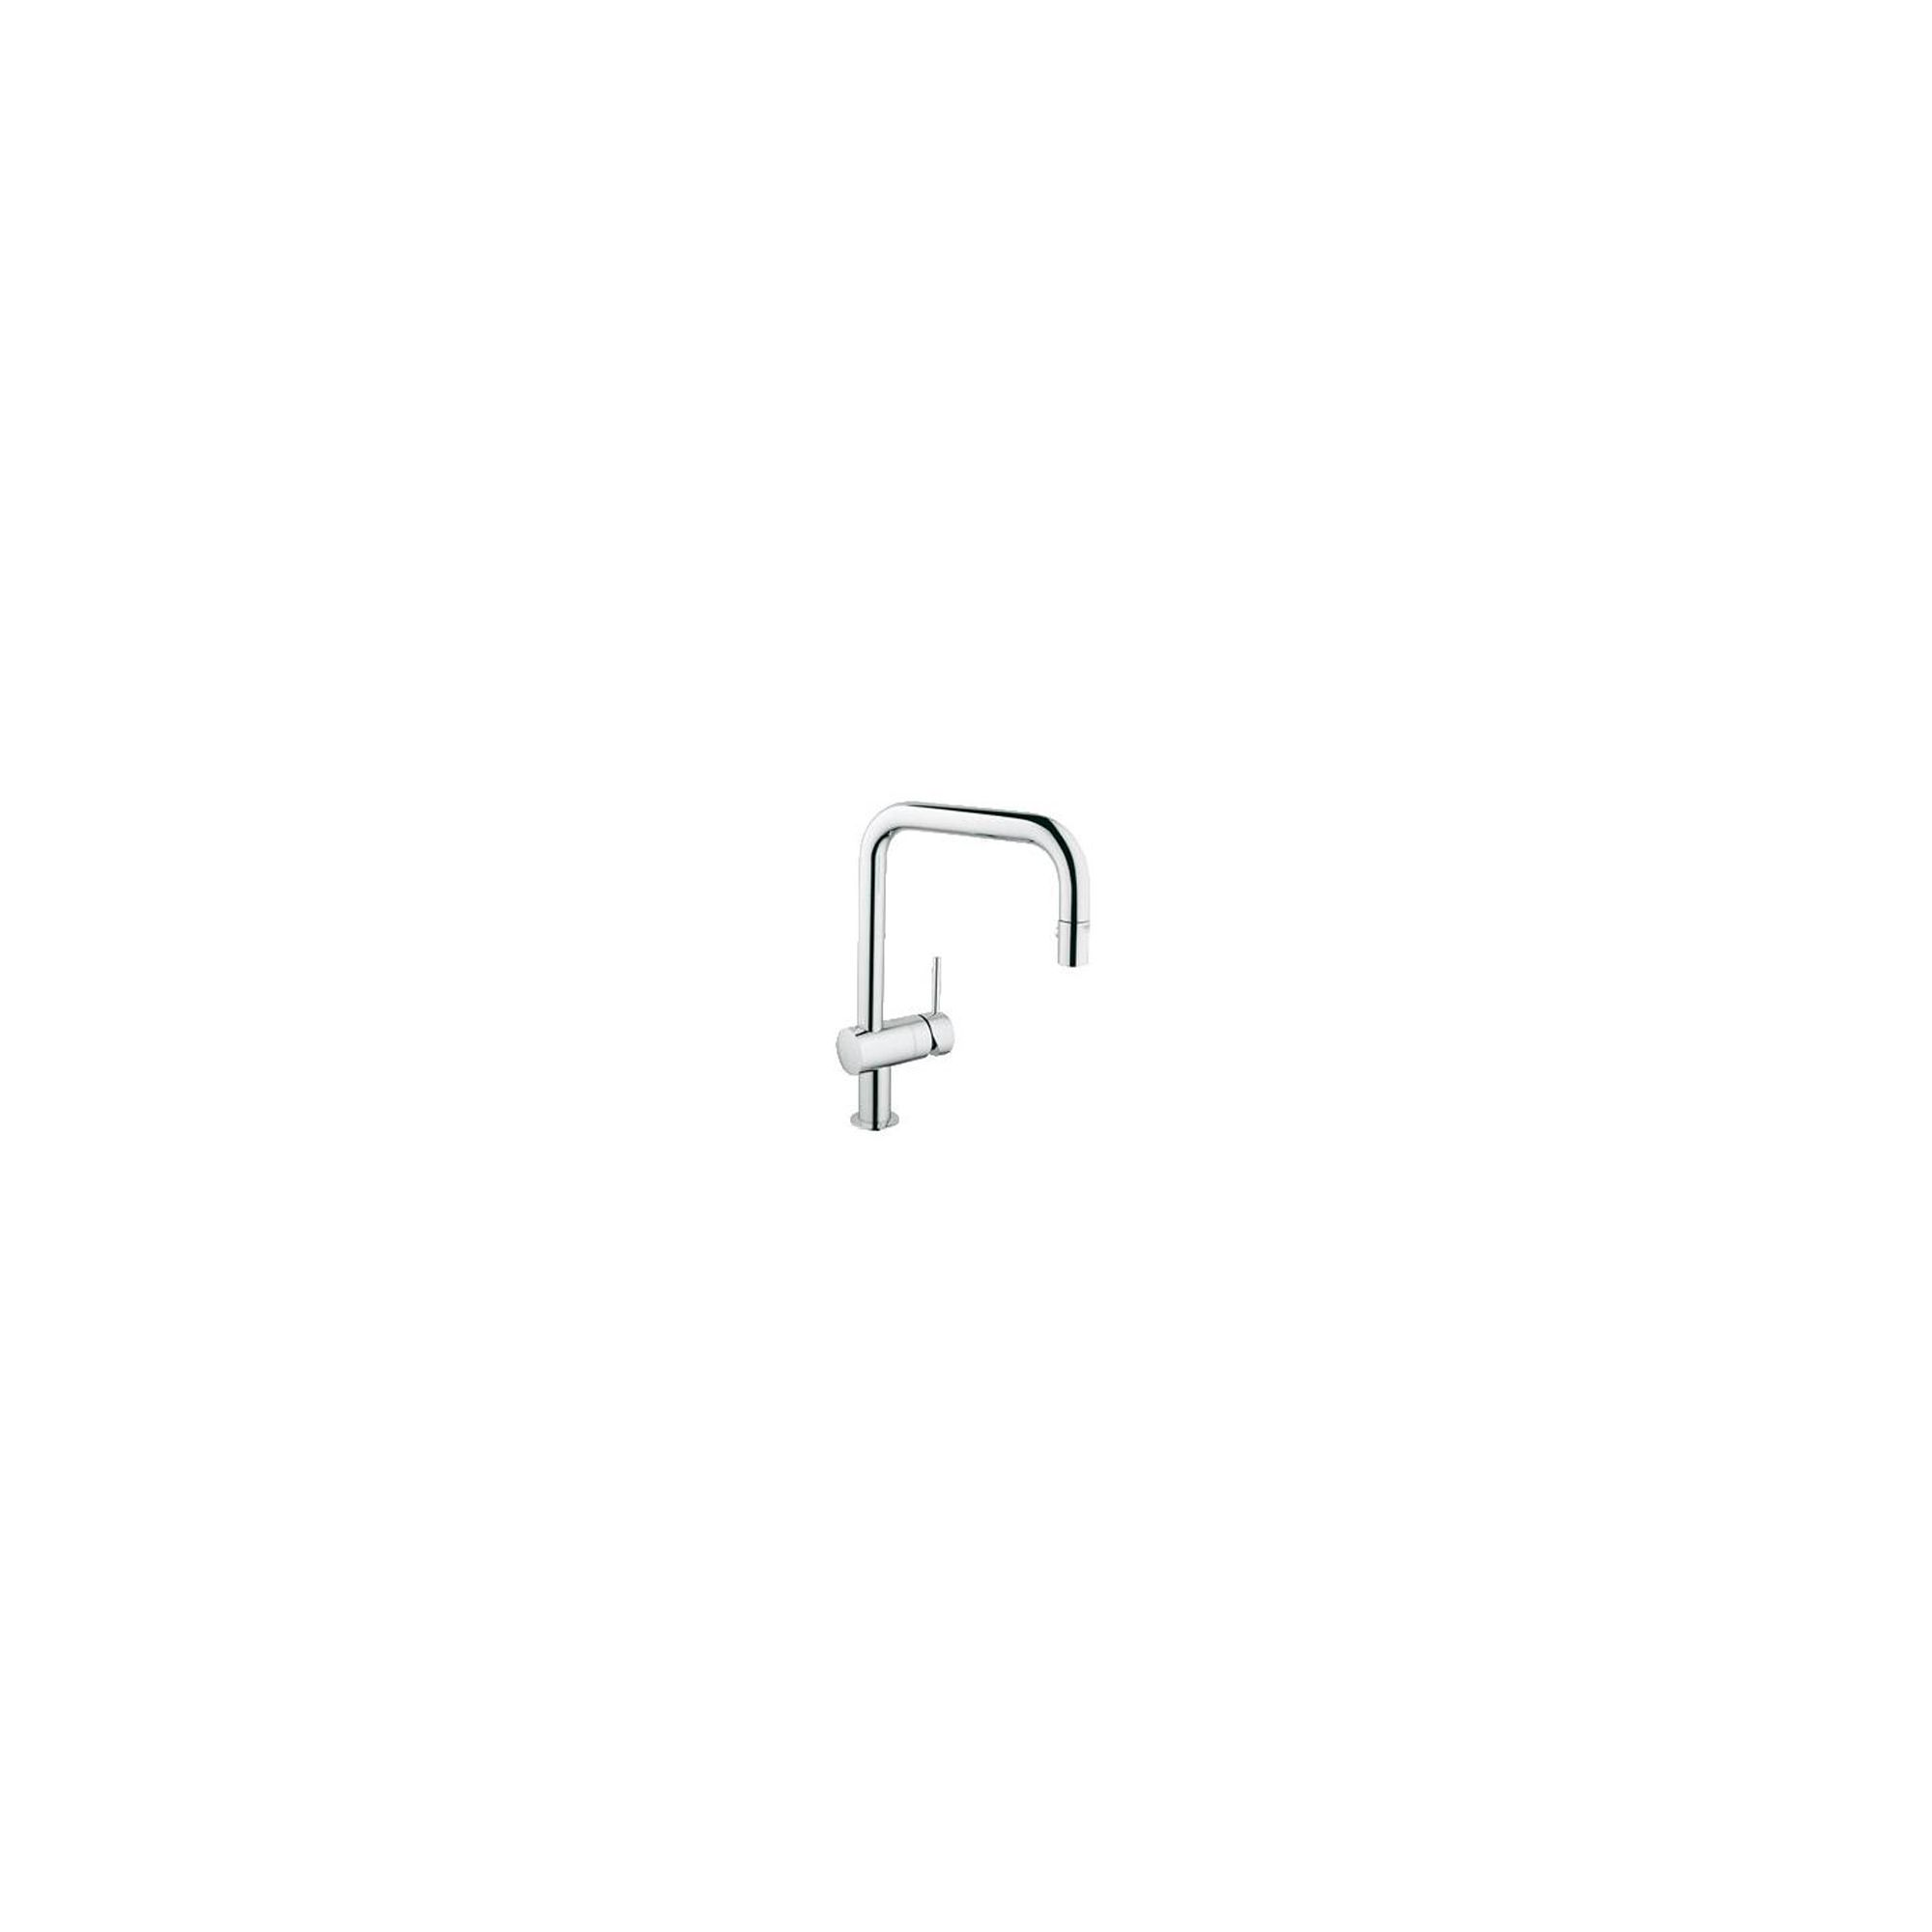 Grohe Minta Mono Sink Mixer Tap, U-Spout, Pull-Out Spray, Single Handle, Chrome at Tesco Direct